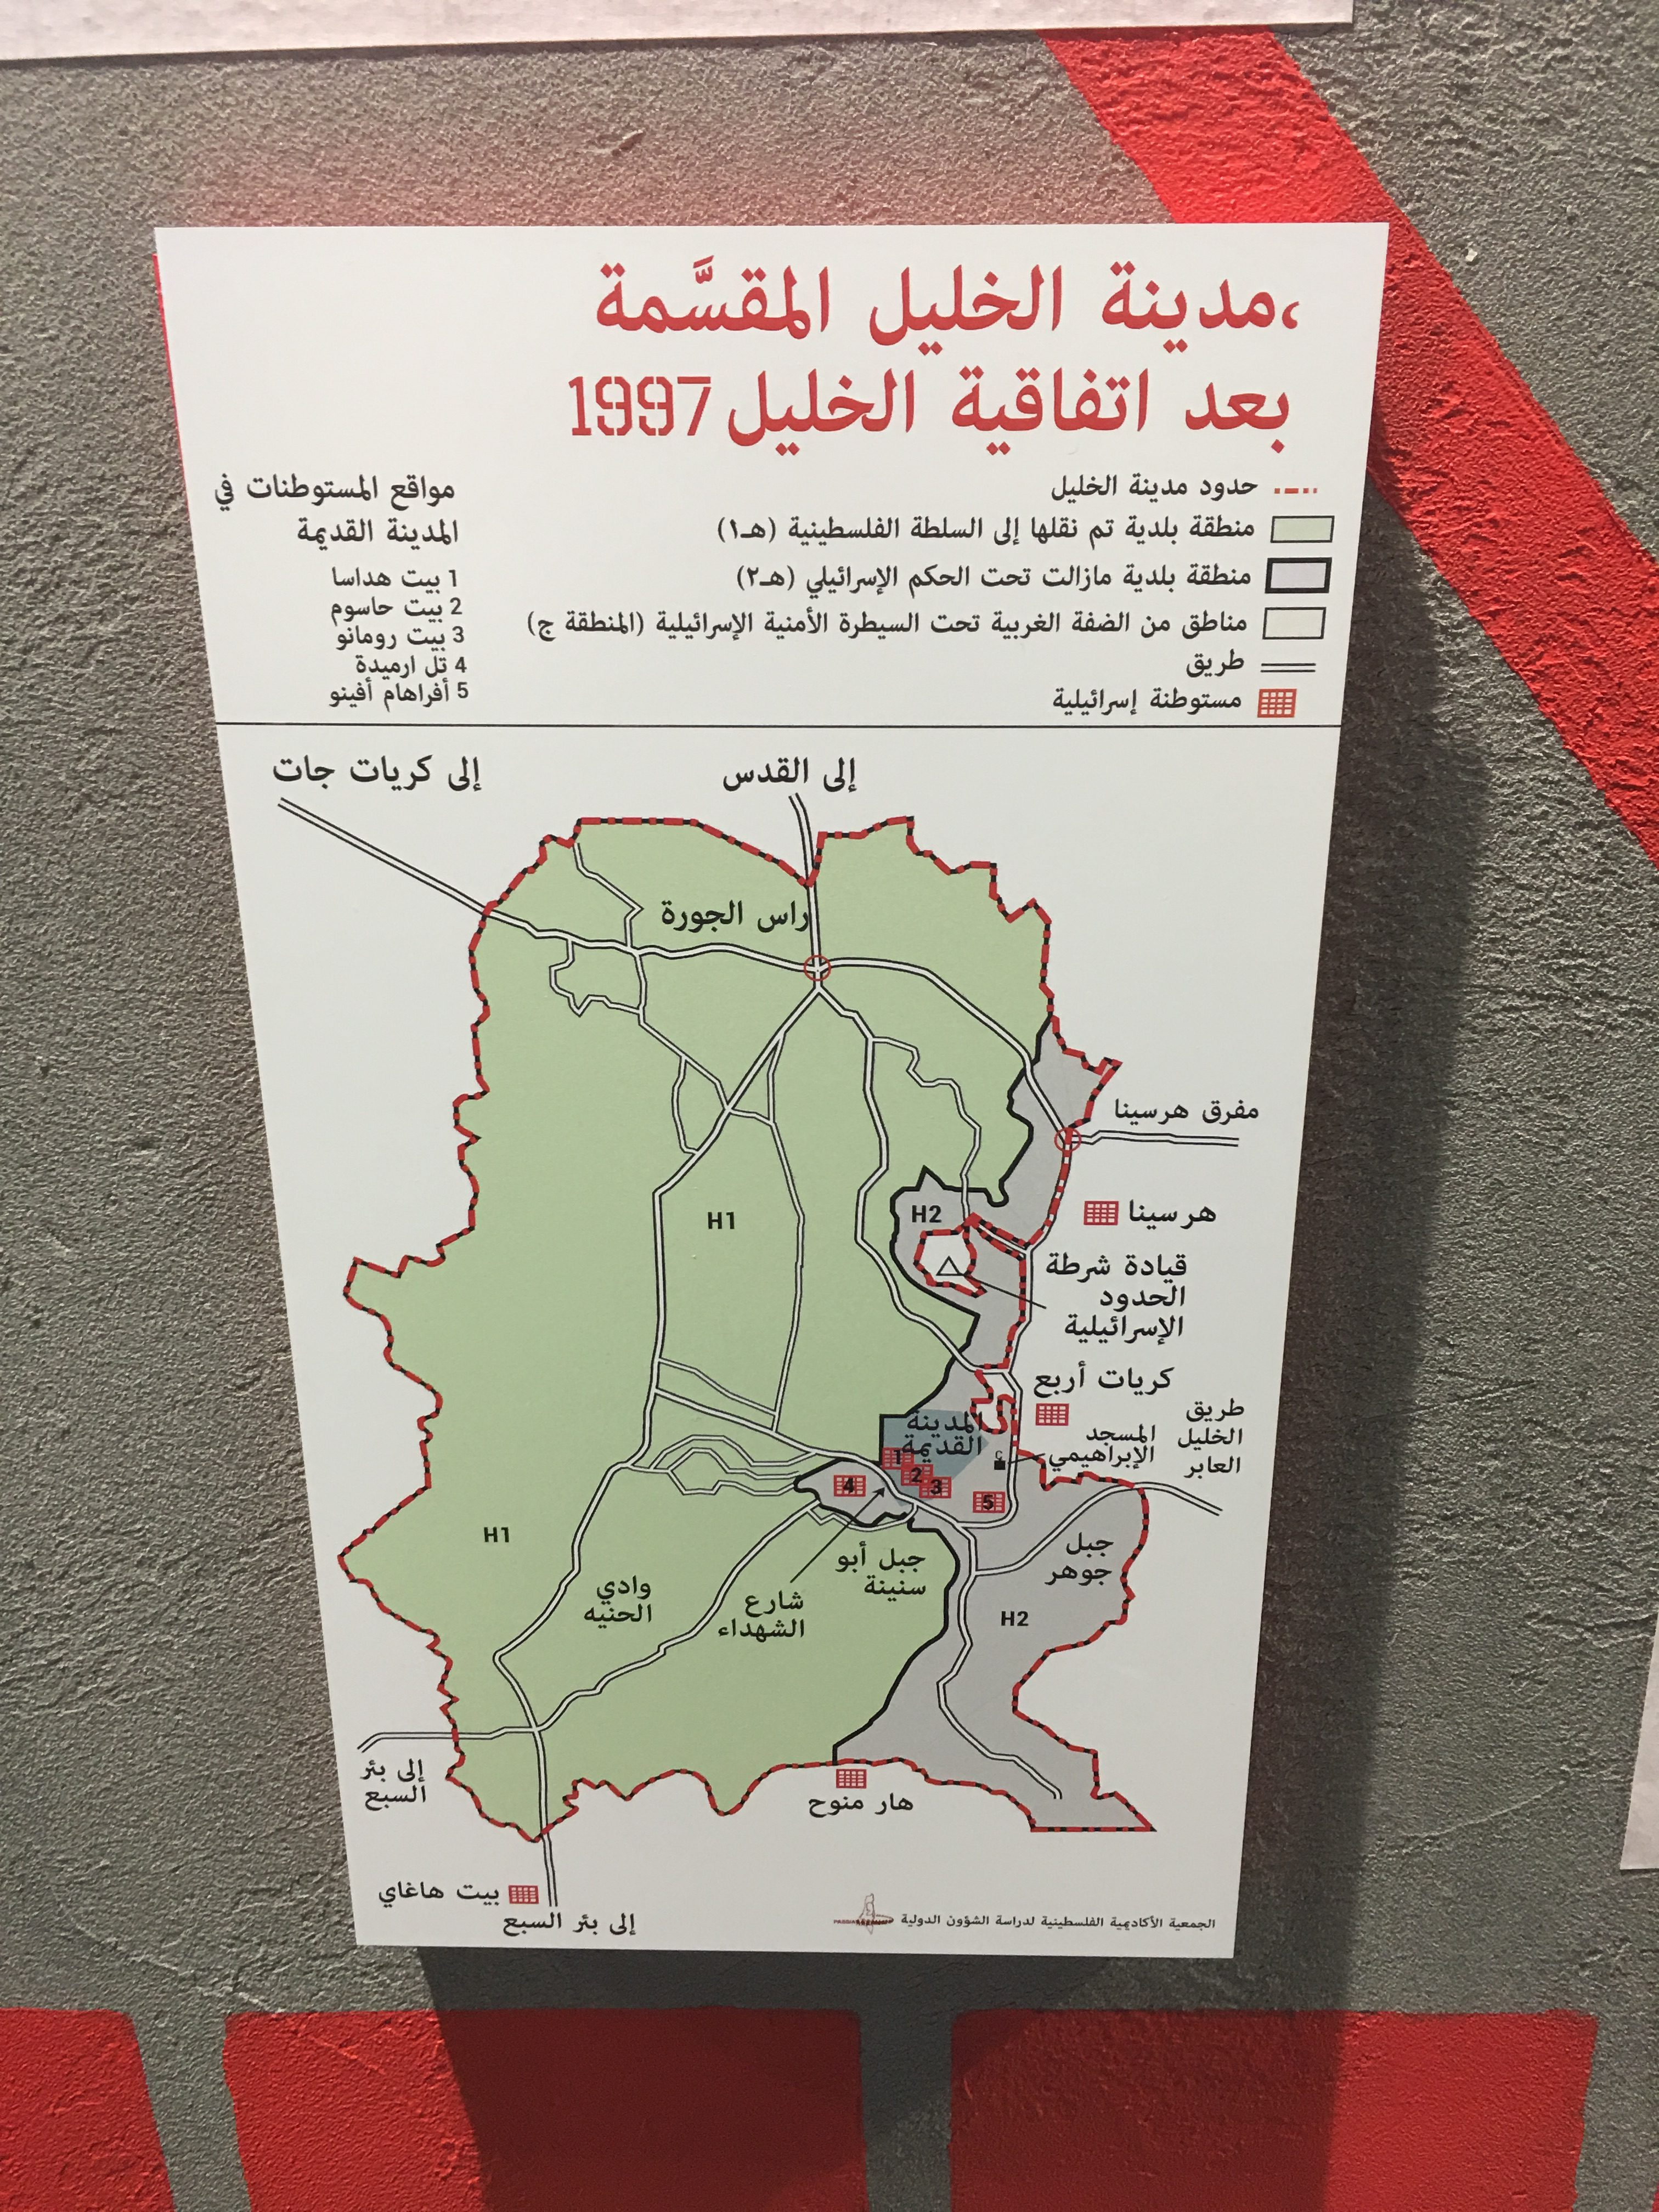 The partitioning of Hebron in 1997